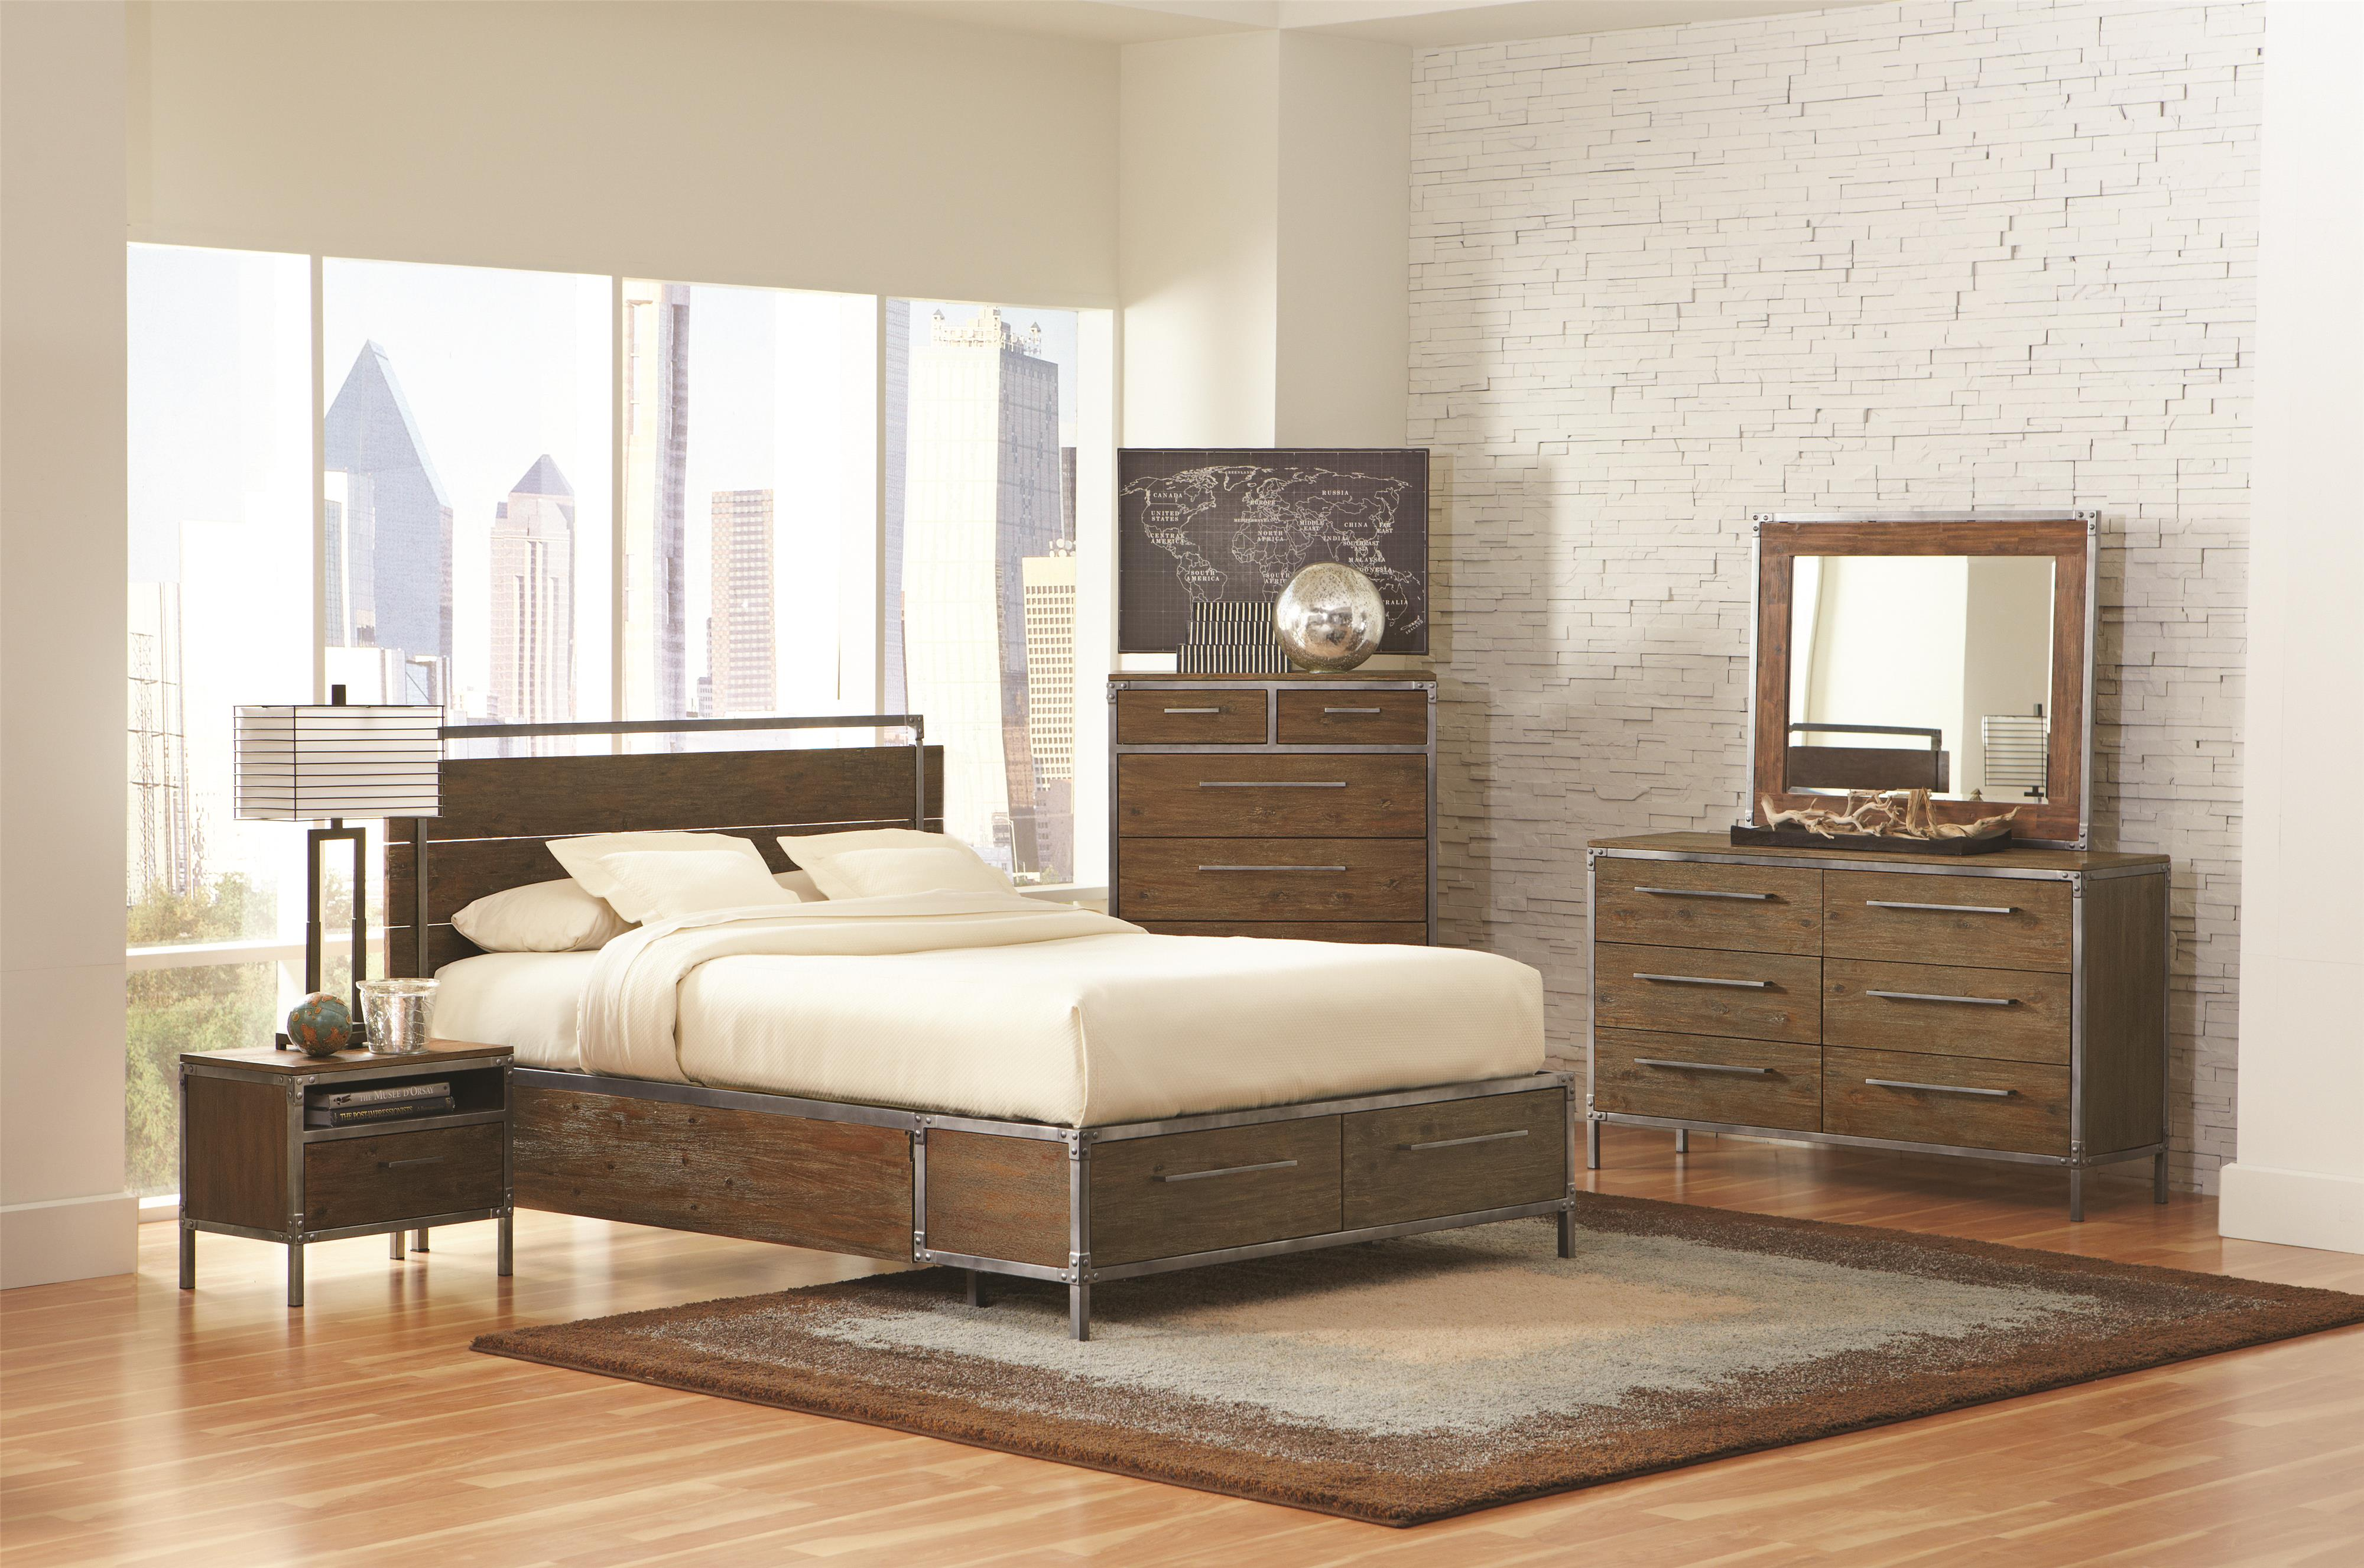 Pewter Bedroom Furniture Coaster Arcadia 20380 Industrial Queen Platform Bed With Pewter